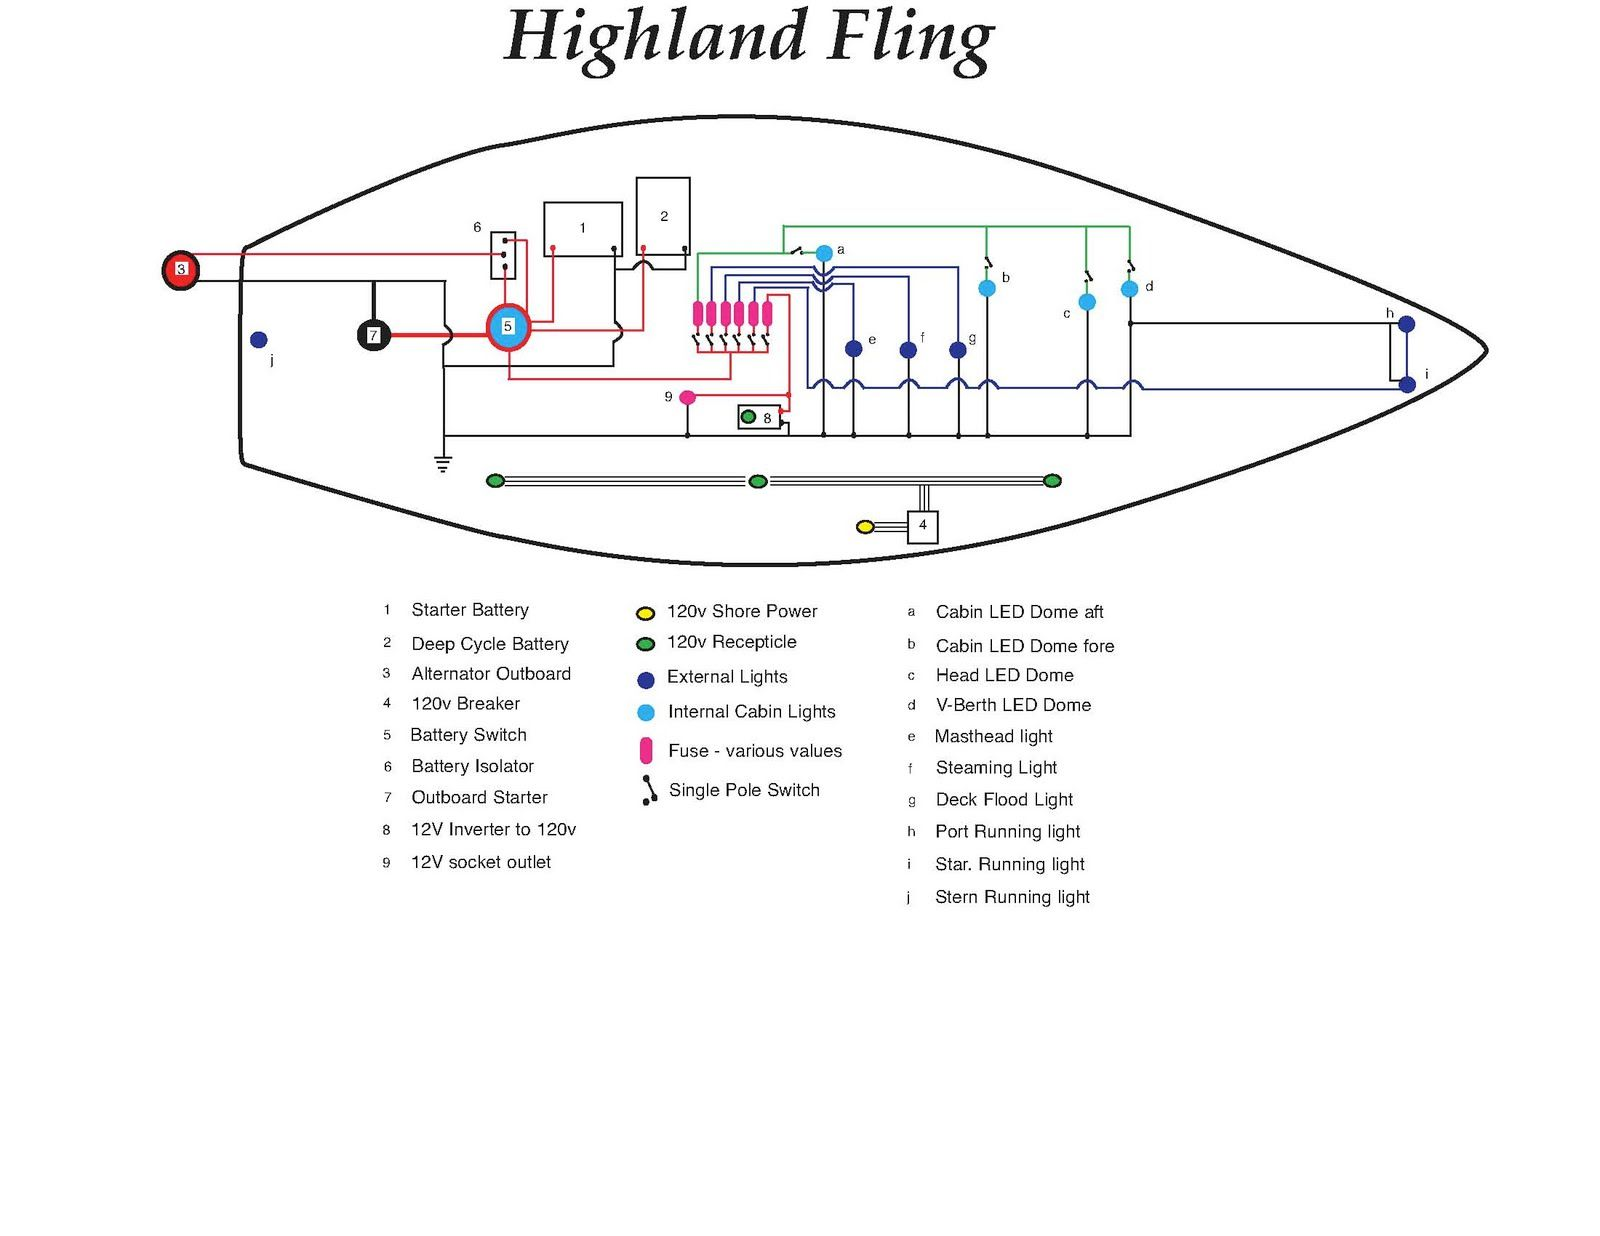 ffdec787036bb8e361b38a7fe86274dc highland fling, my grampian 26 sailboat wiring diagram sailboat wiring diagram at n-0.co